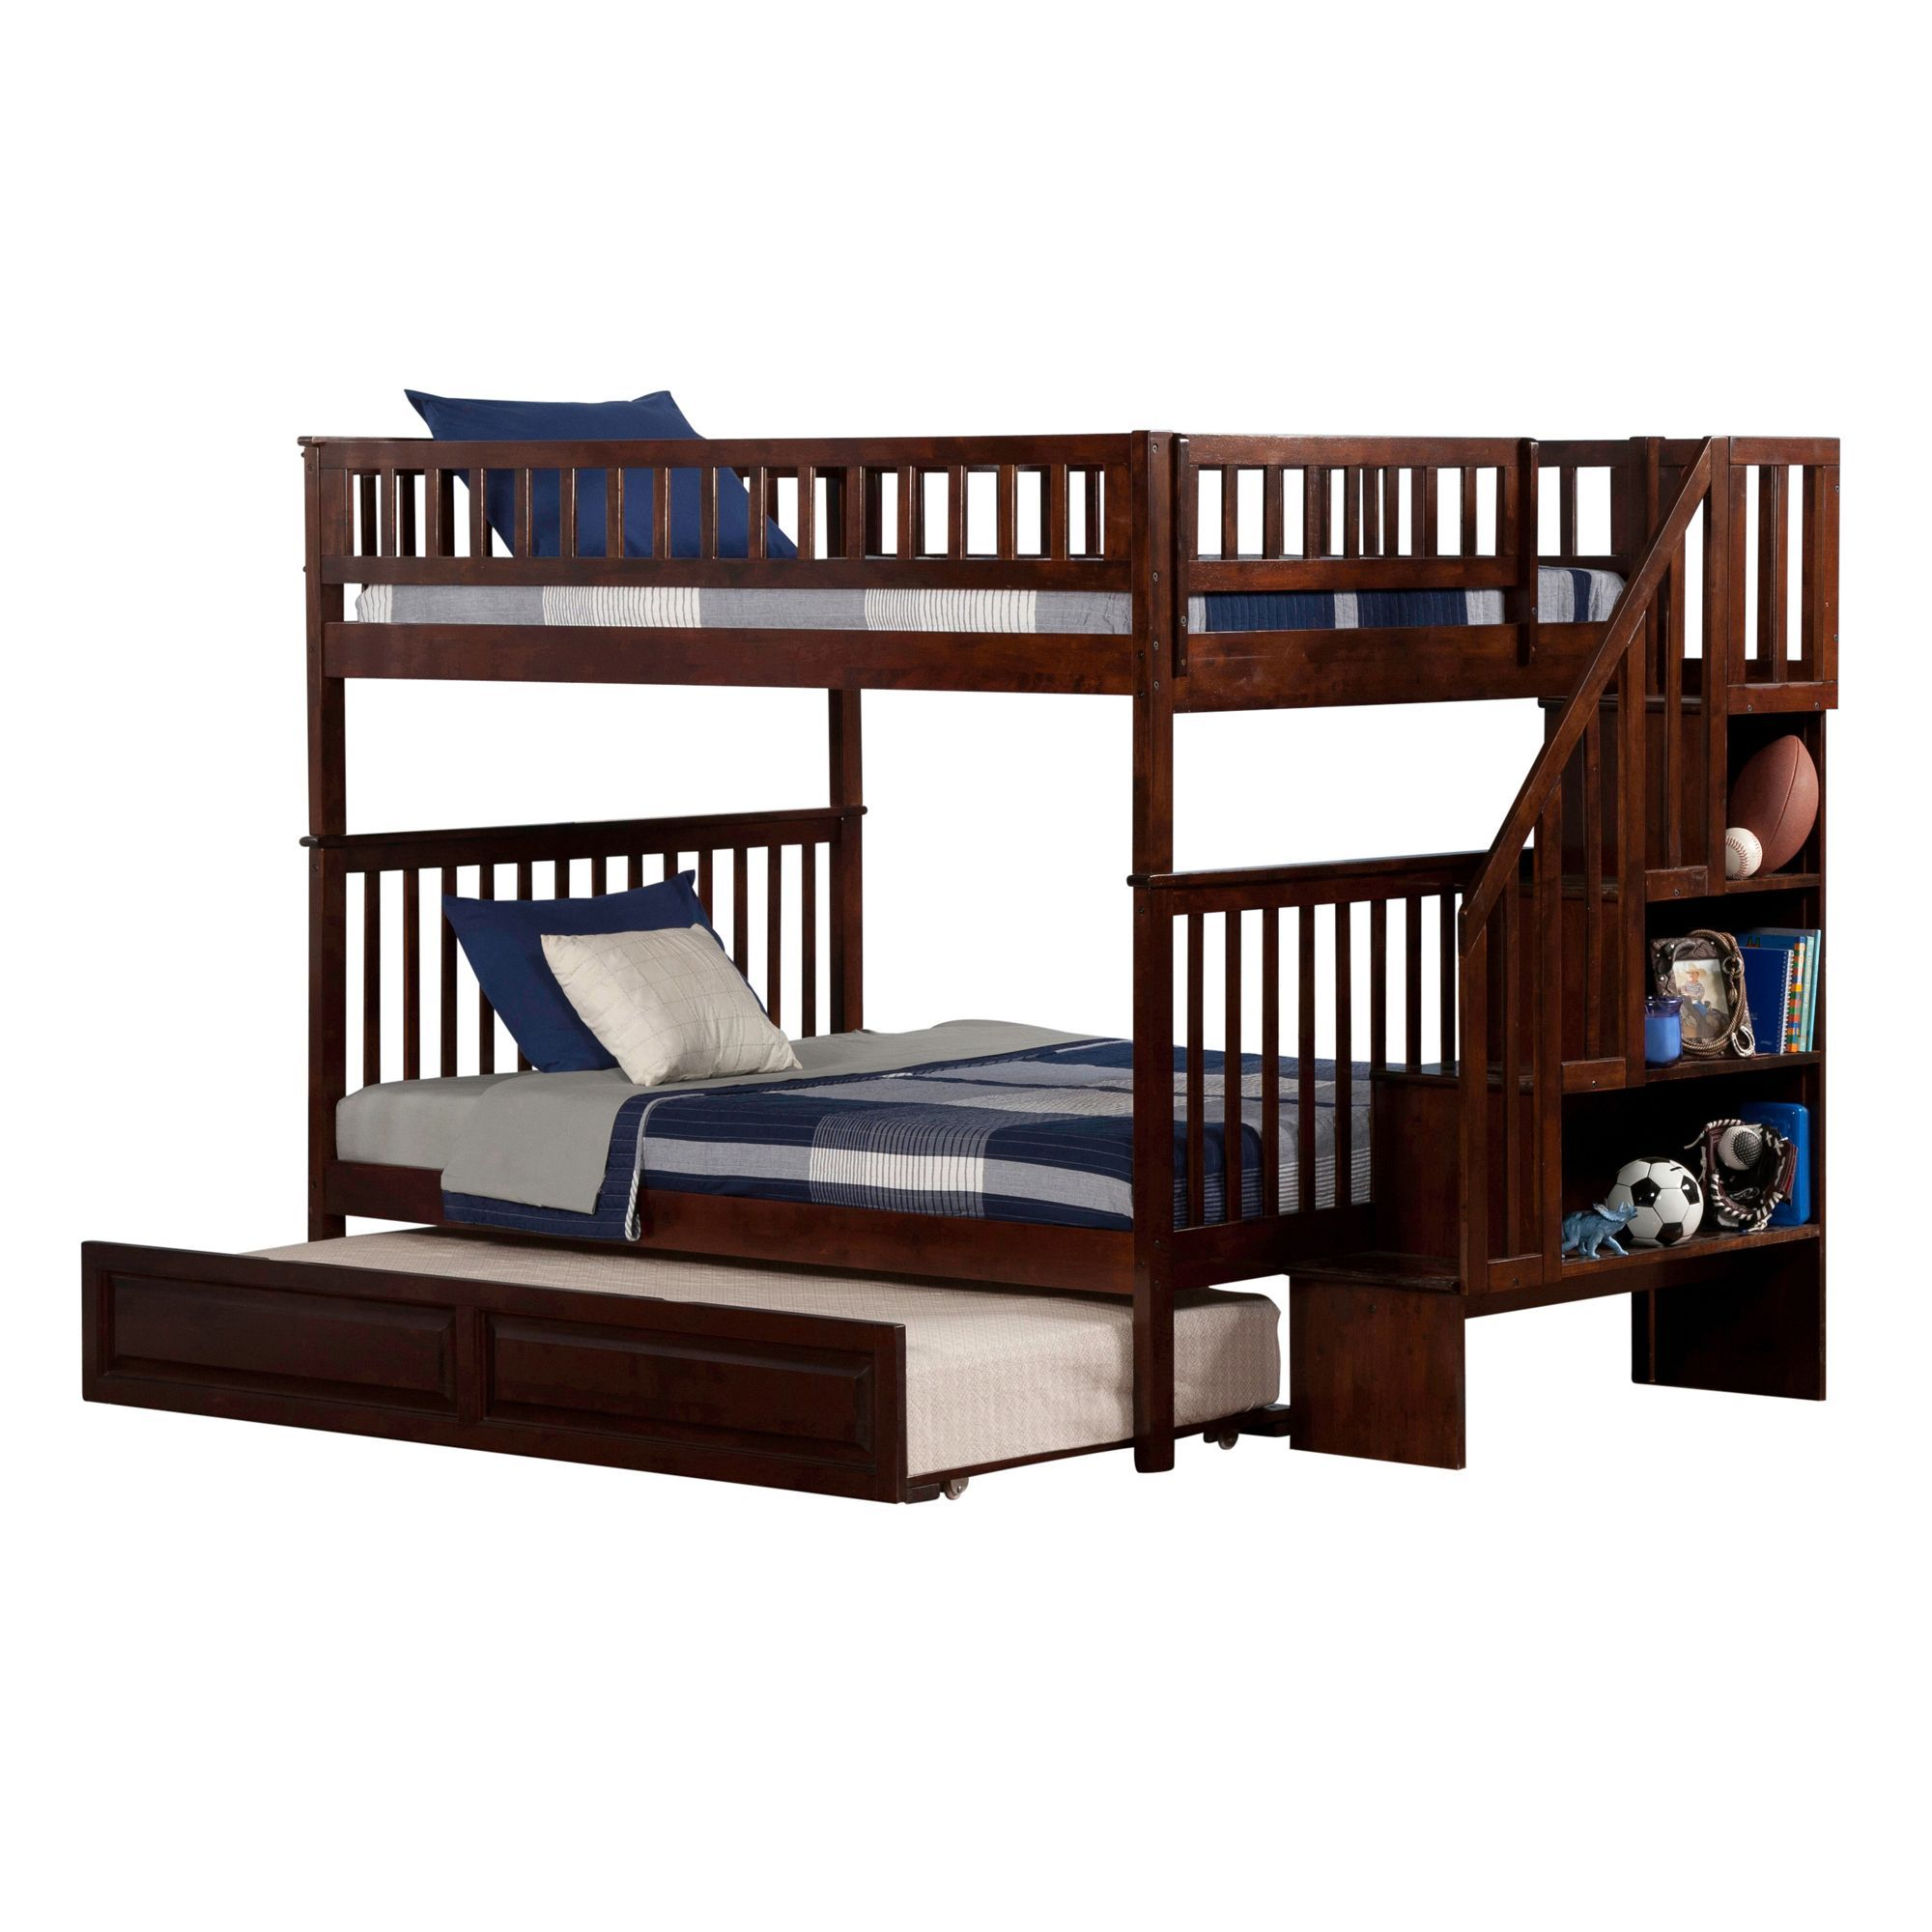 bunk in atlantic pin staircase beds with full walnut over woodland bed furniture trundle raised panel